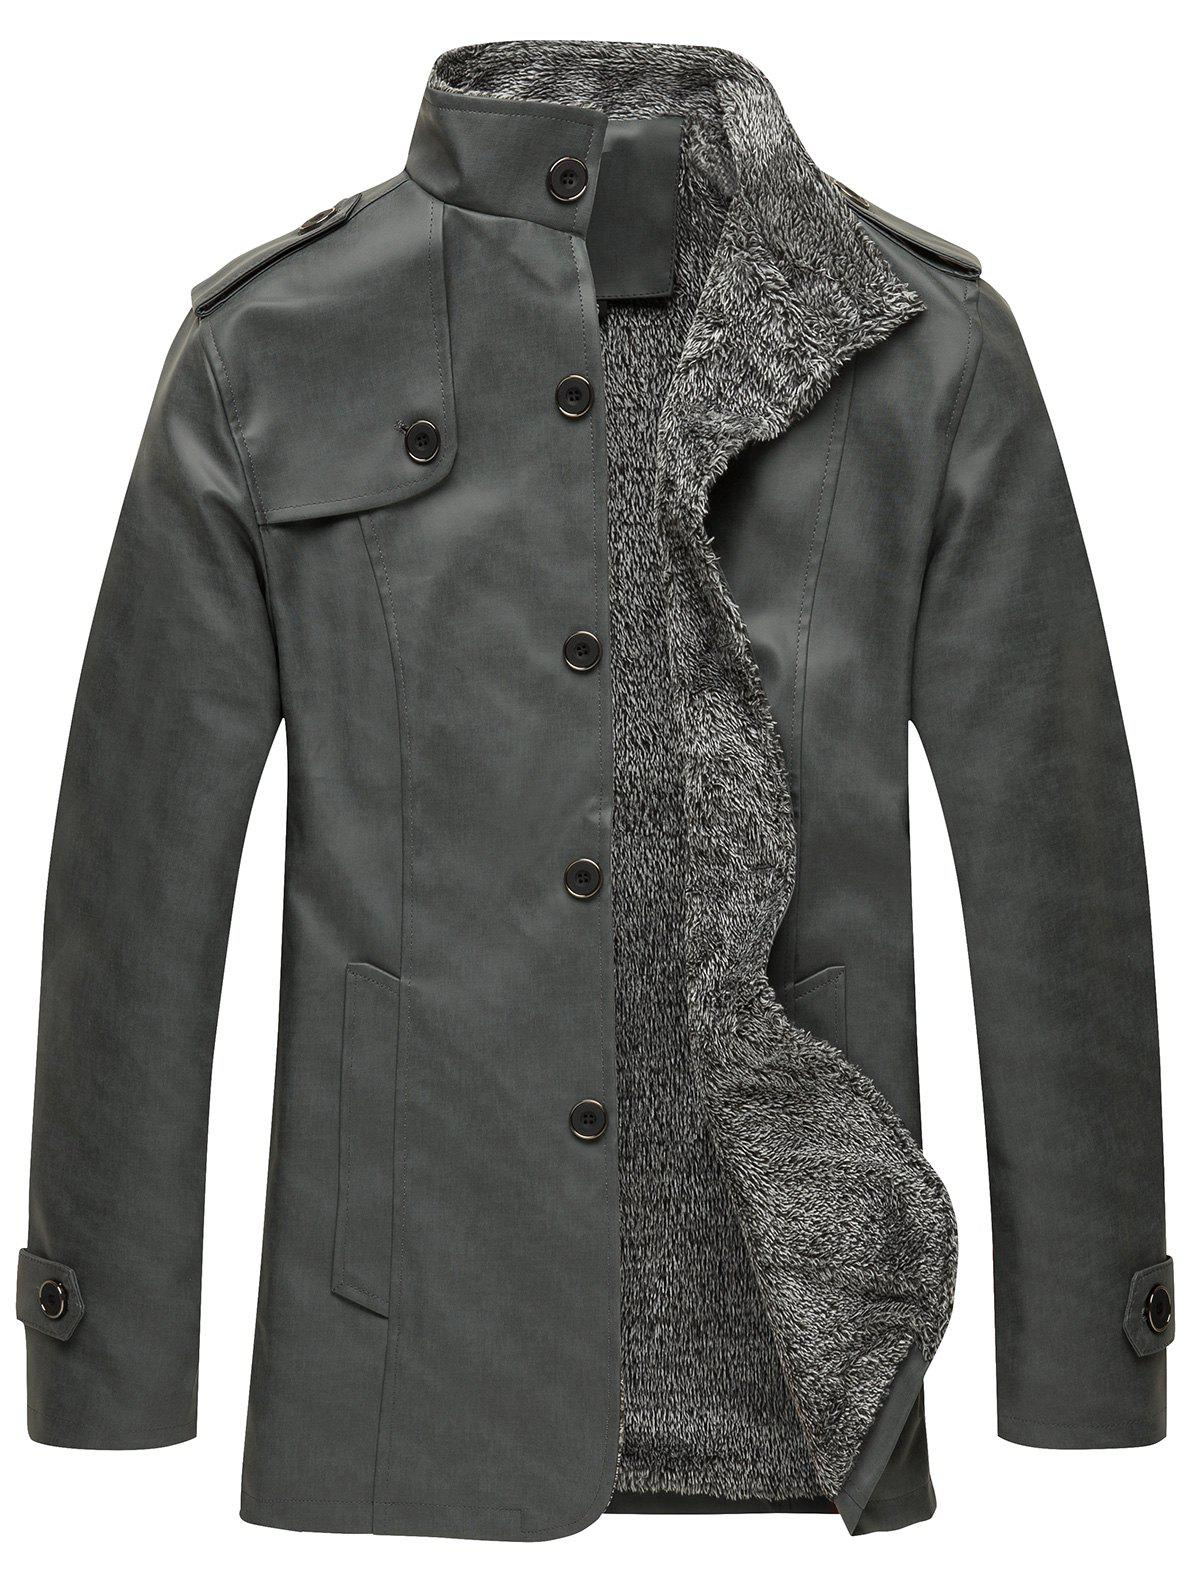 Stand Collar Single Breasted Epaulet Design Coat - DARK GRAY M